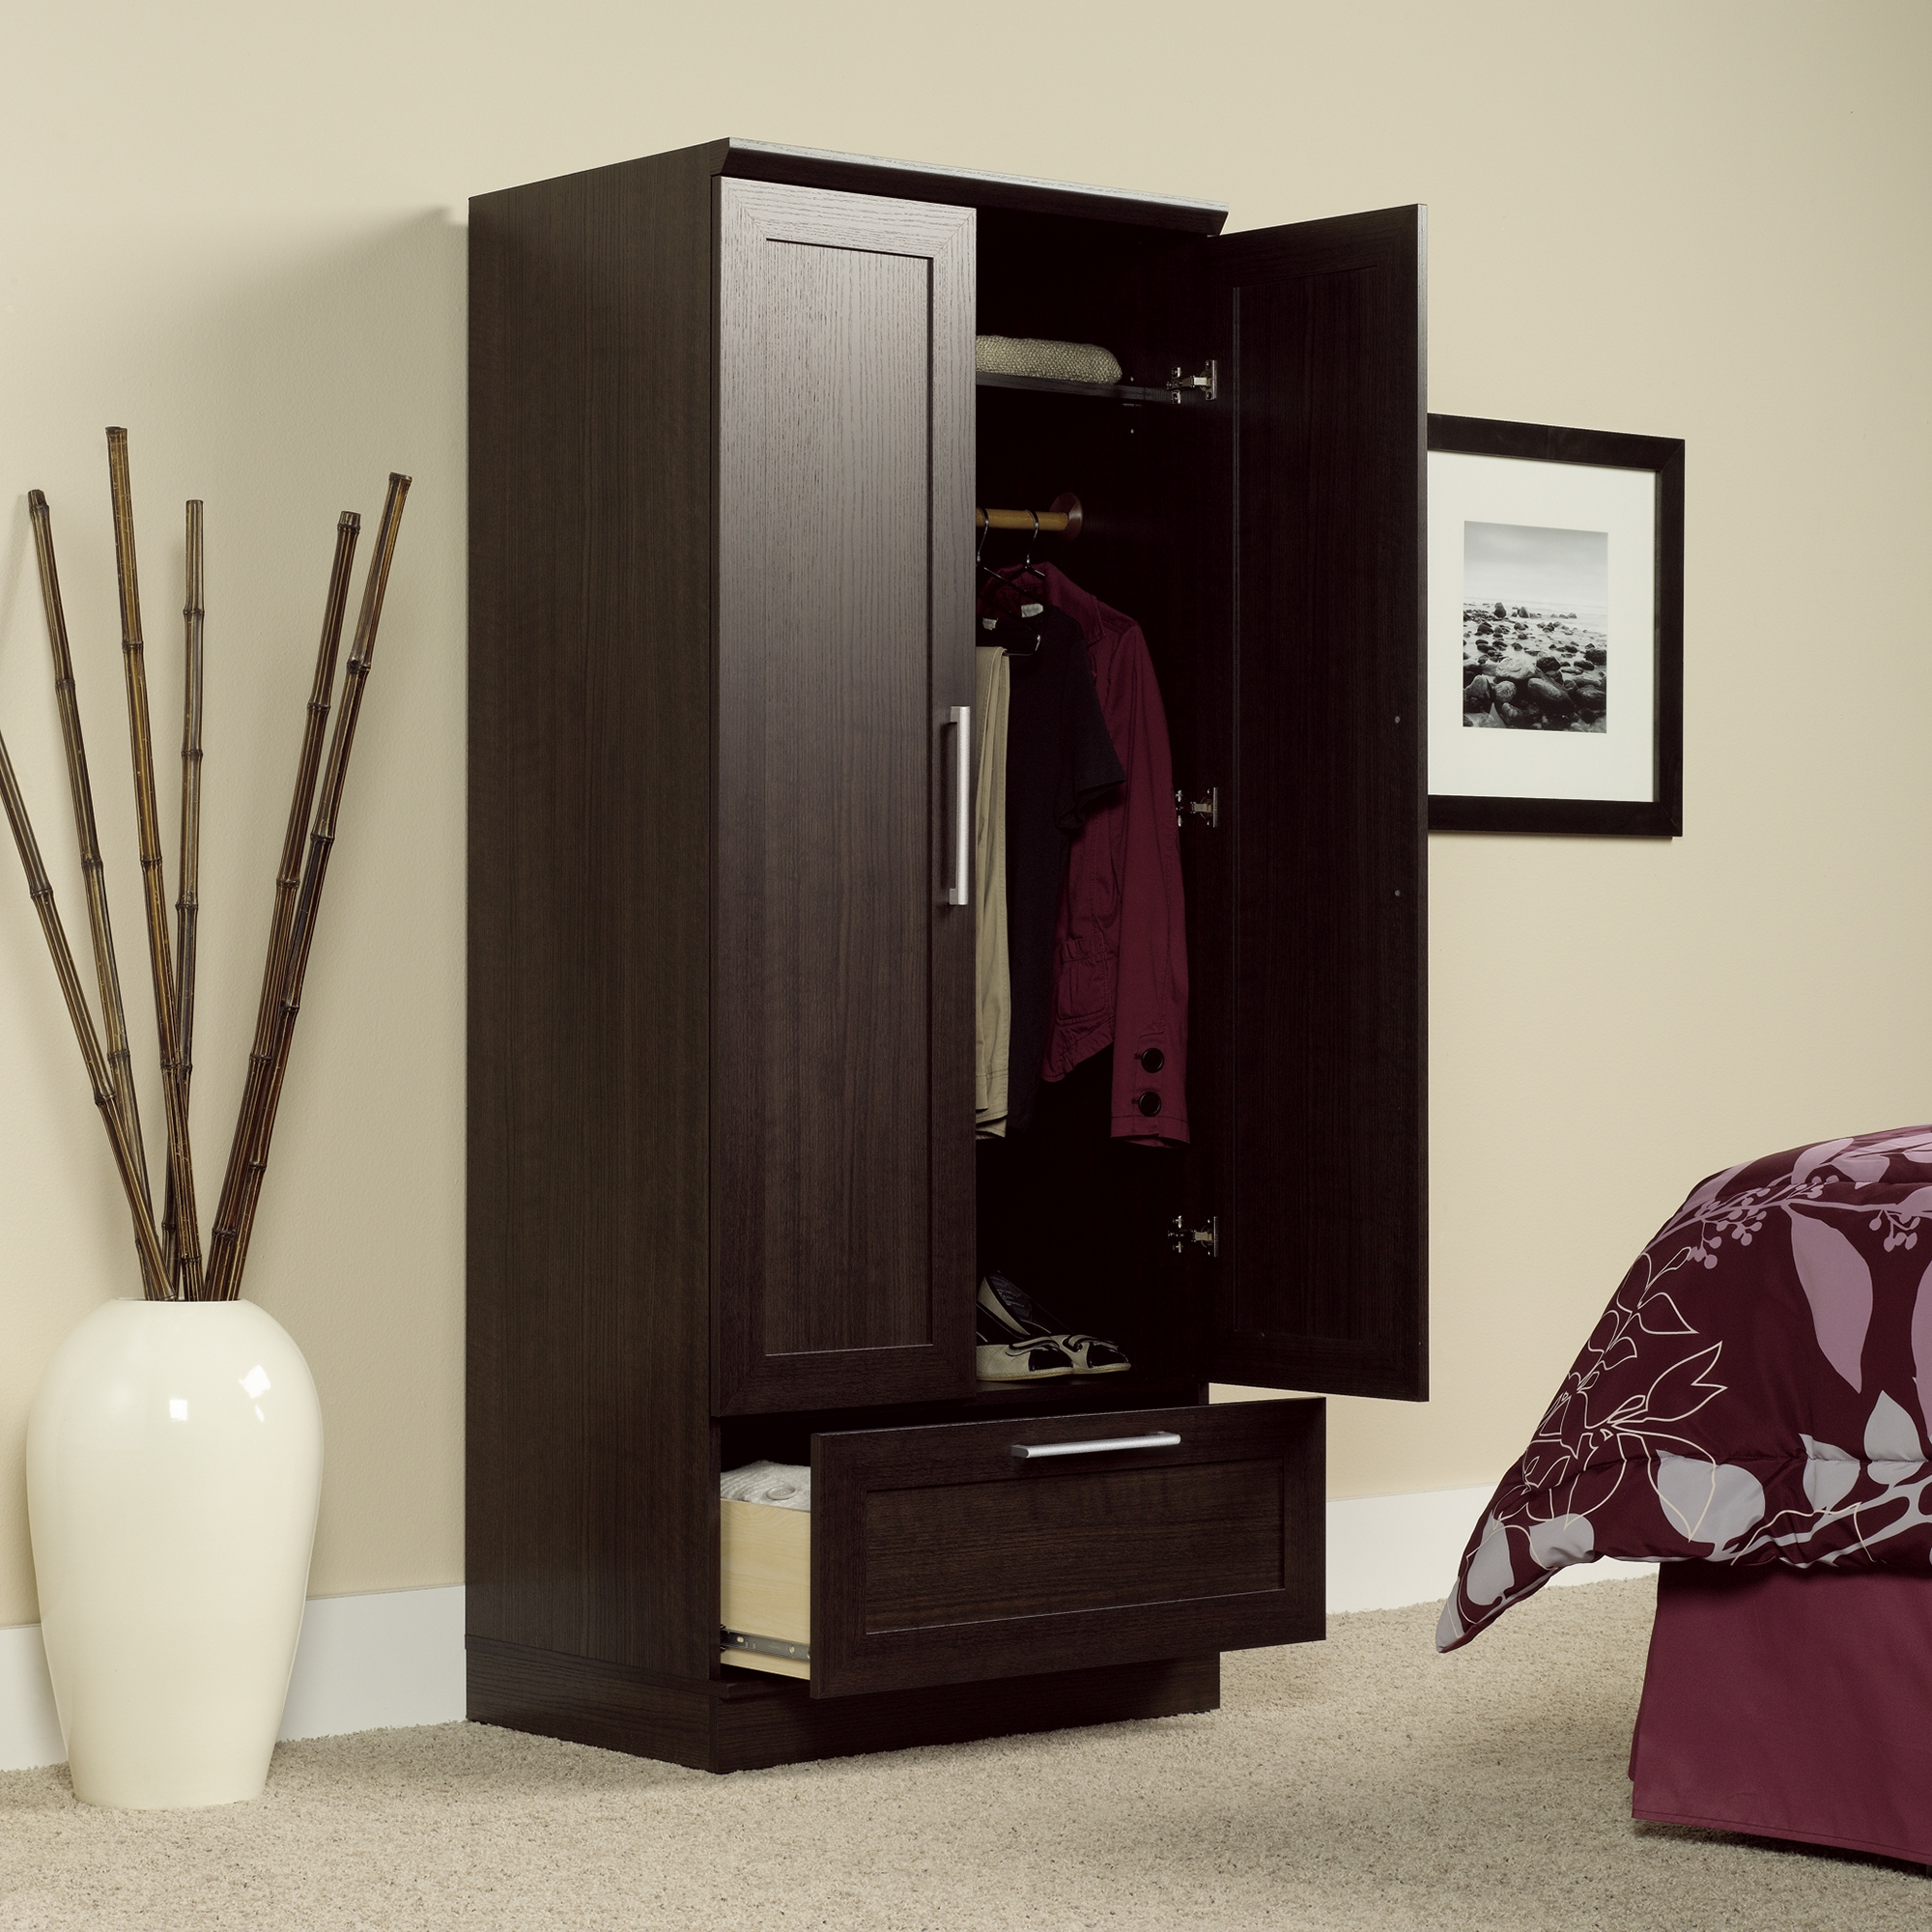 Sauder Beginnings Wardrobe And Storage Cabinet With Adjustable Shelves